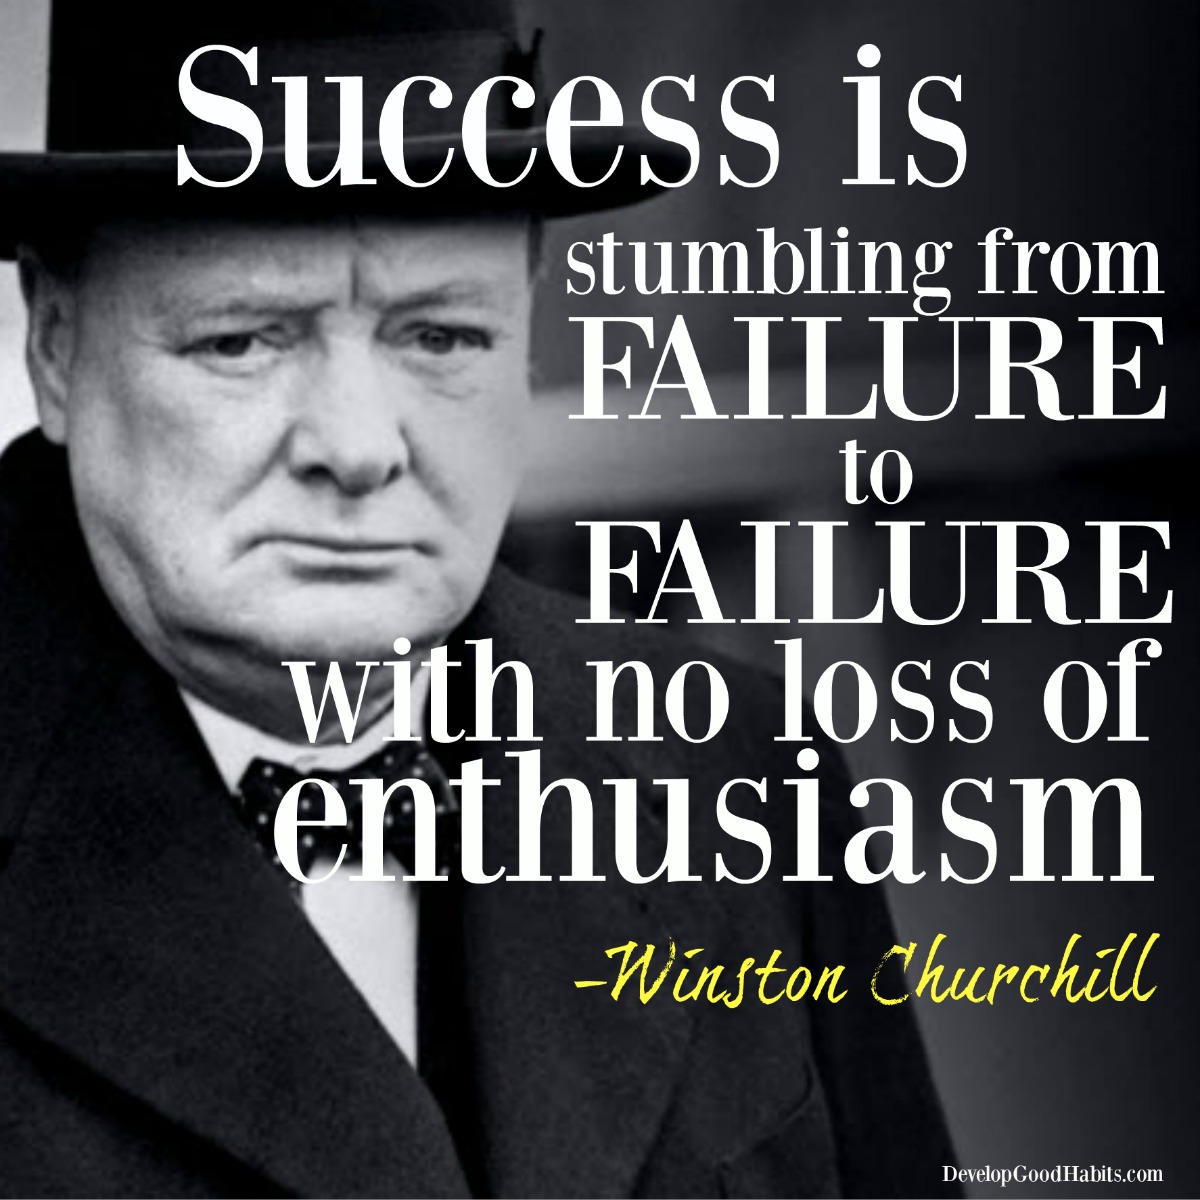 Quotes About Failure In Life: Churchill-success-quotes